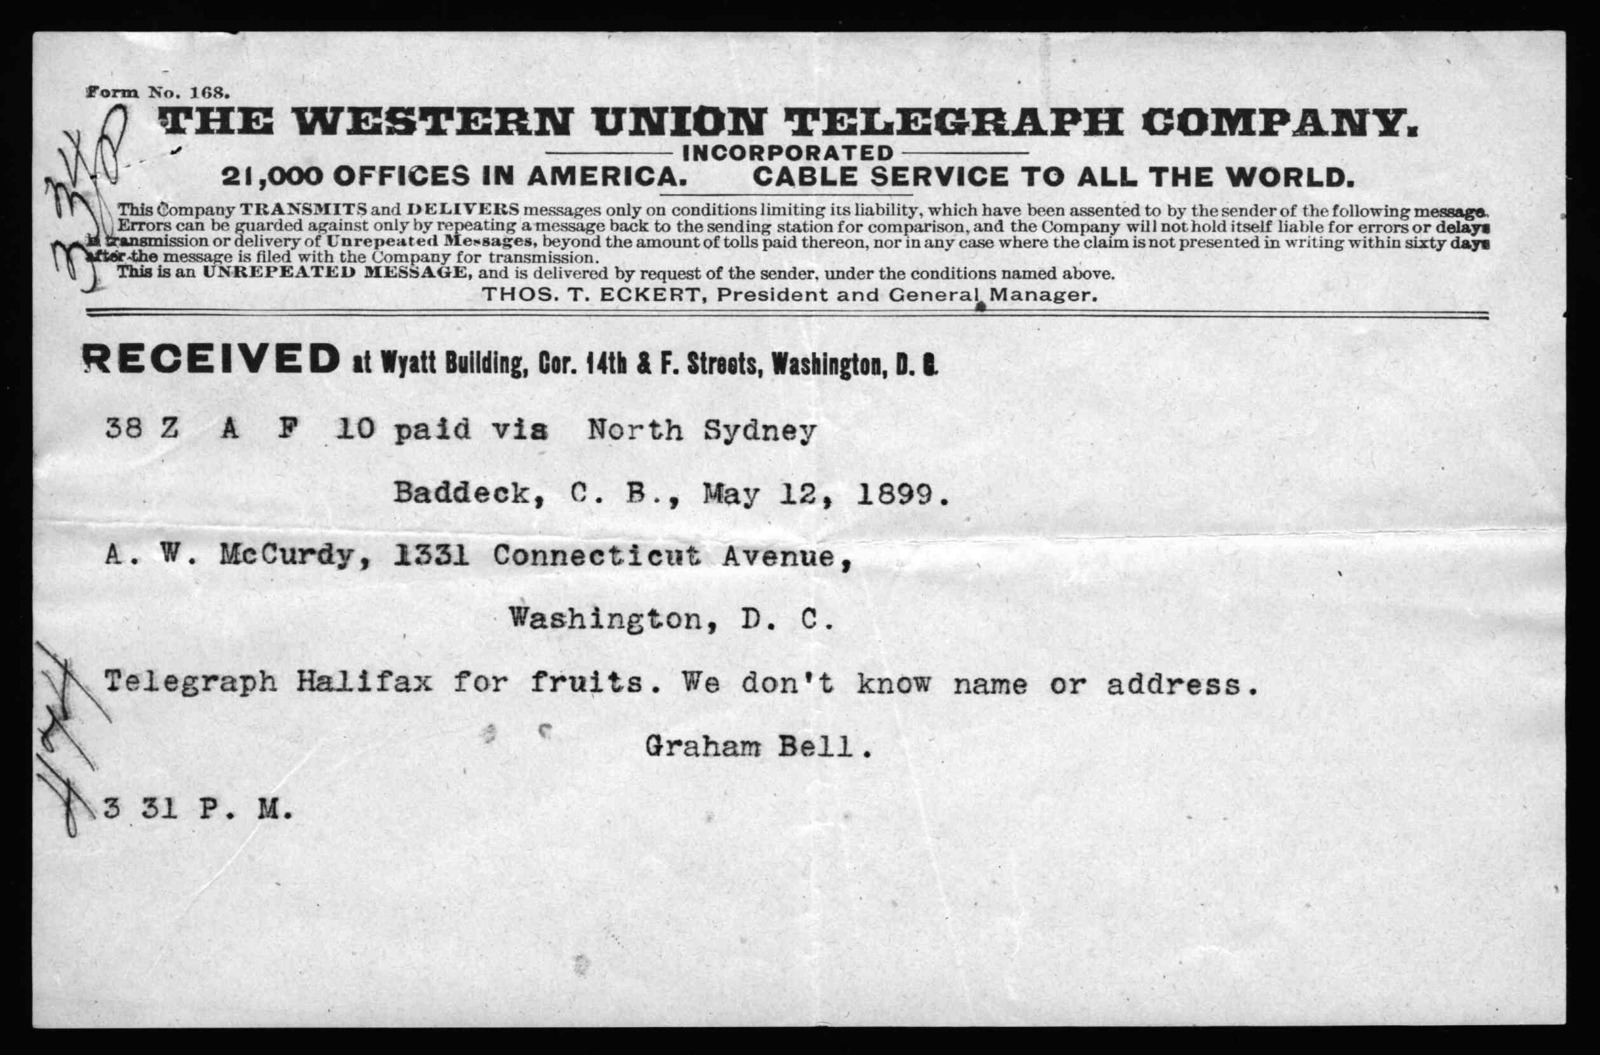 Telegram from Alexander Graham Bell to Arthur McCurdy, May 12, 1899